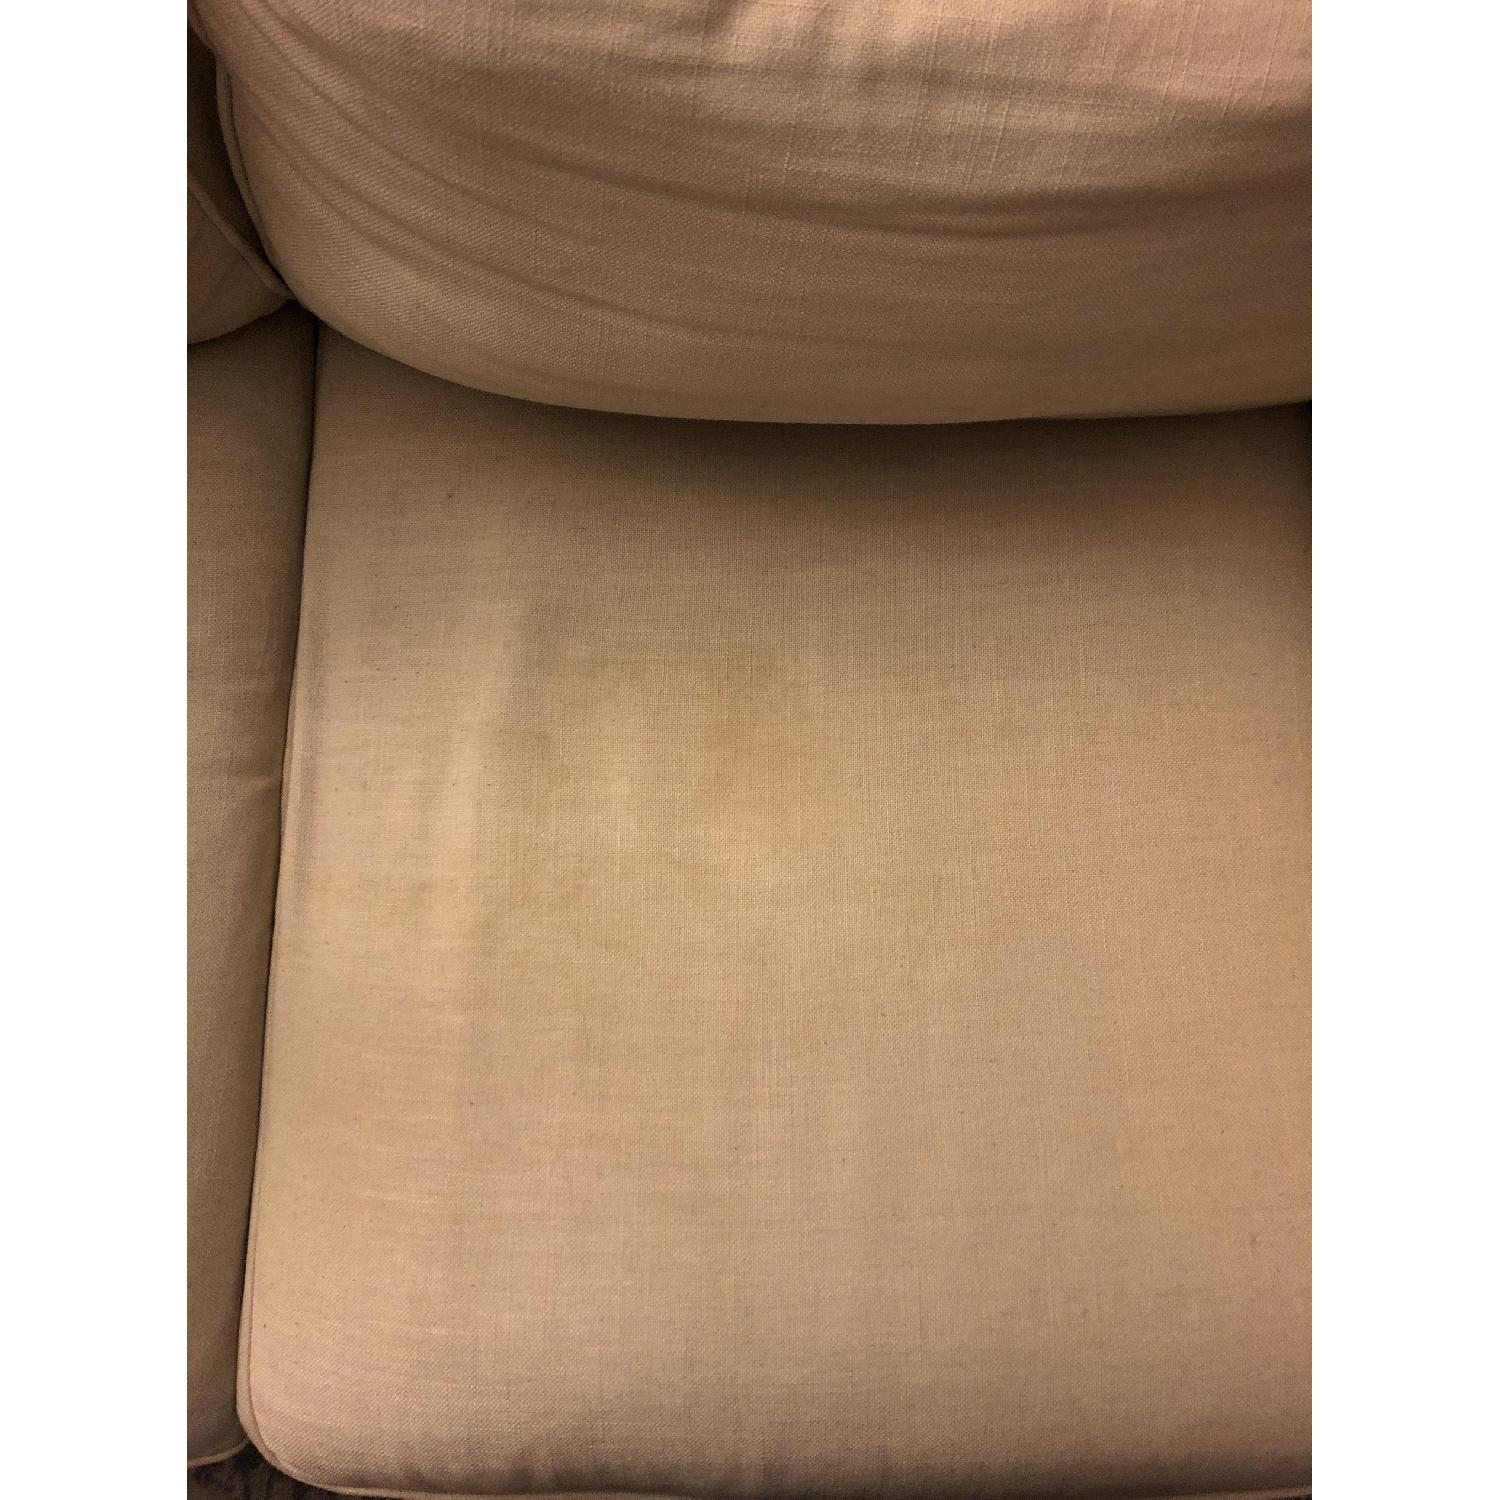 Pottery Barn Beverly Sectional Sofa w/ Chaise-5